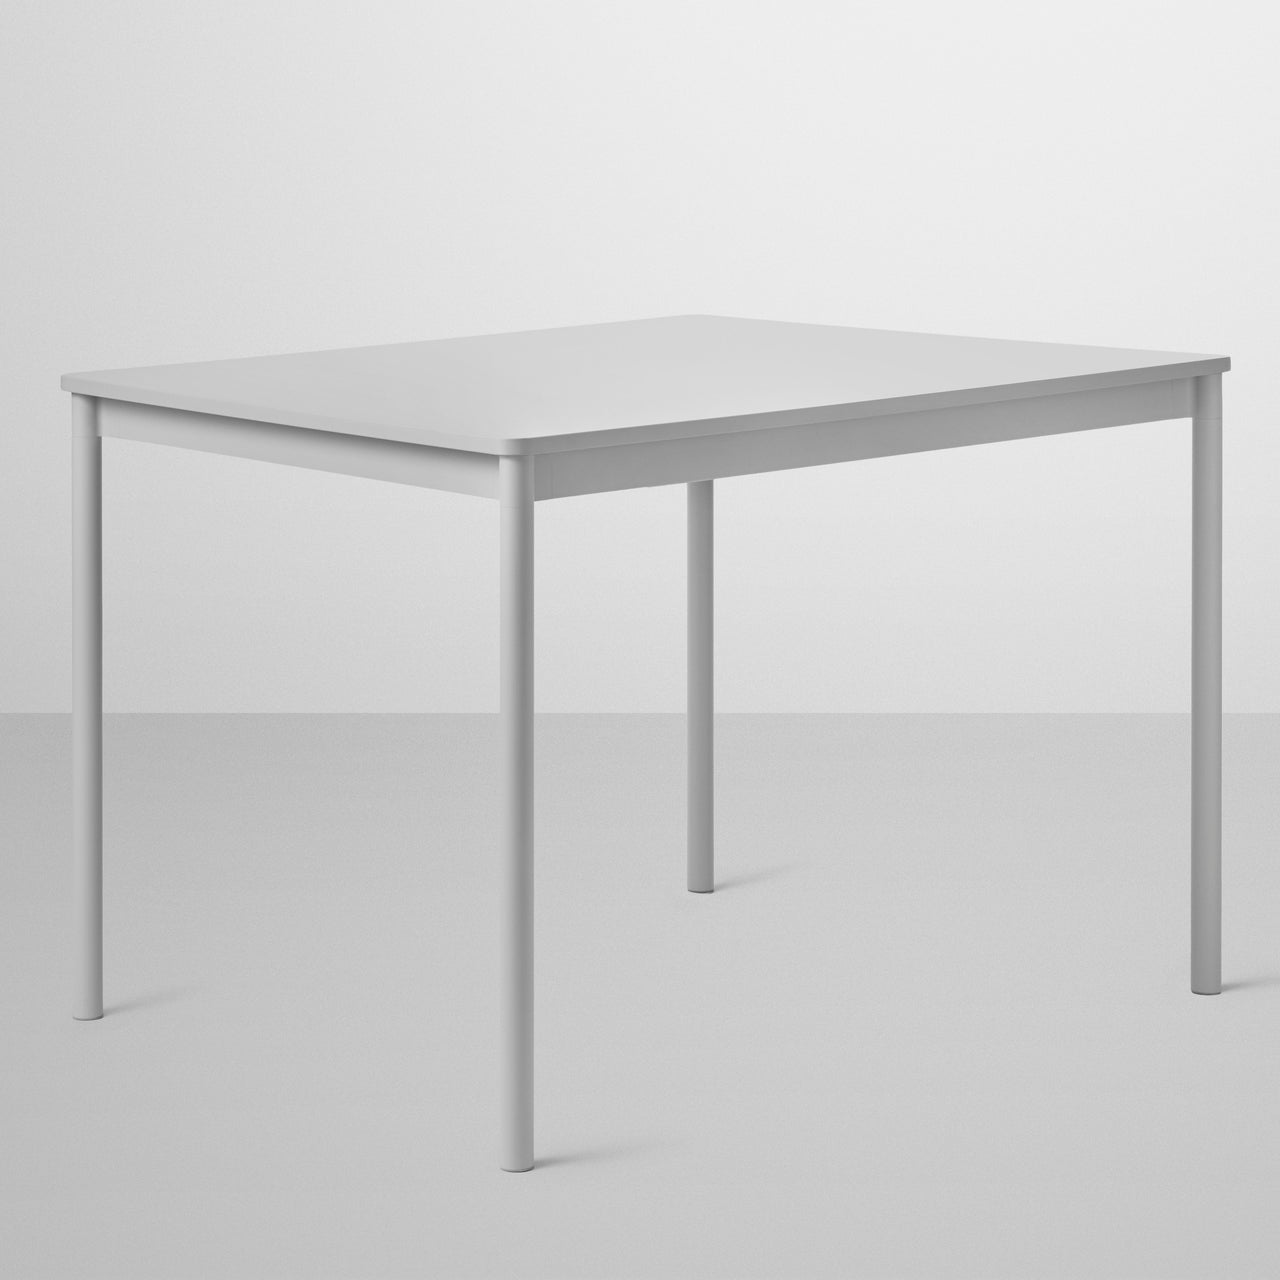 Base Table: Small